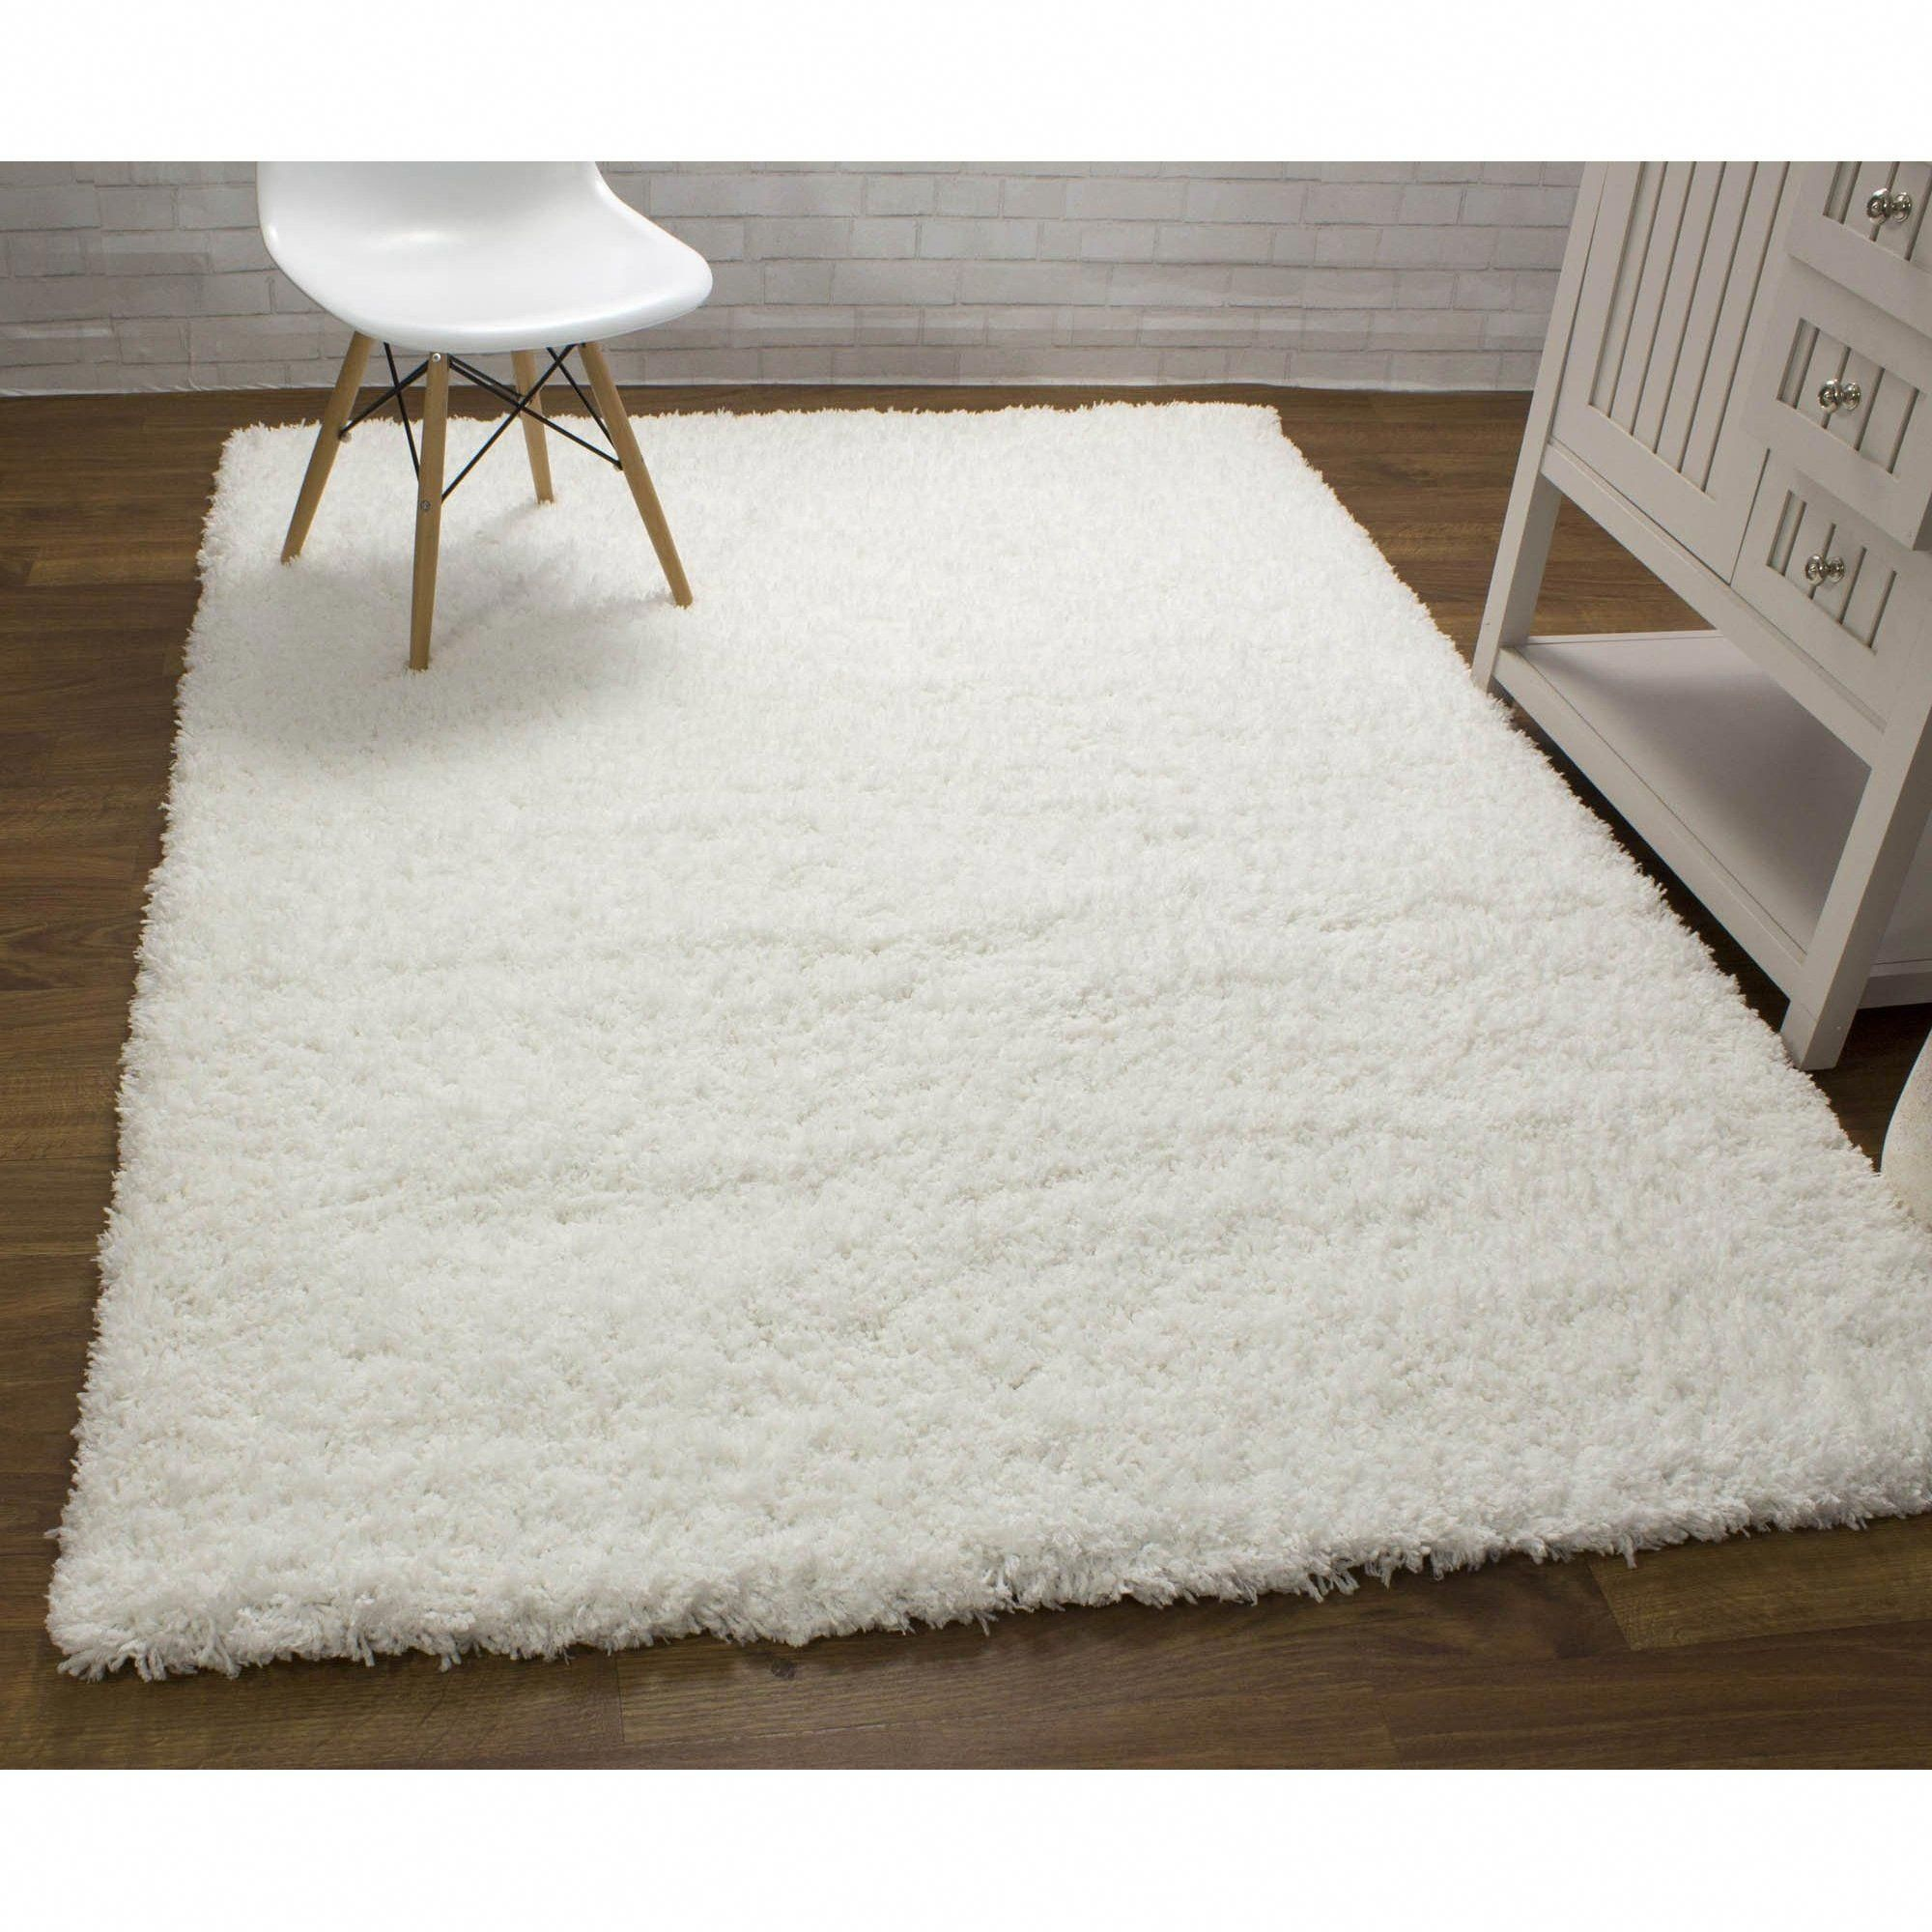 Shag Rug White High Quality Carpet Polyester Decor Decorating Rugs Floors Myhomeisbetterthanyours Floorcoverings White Area Rug Quality Carpets Area Rugs